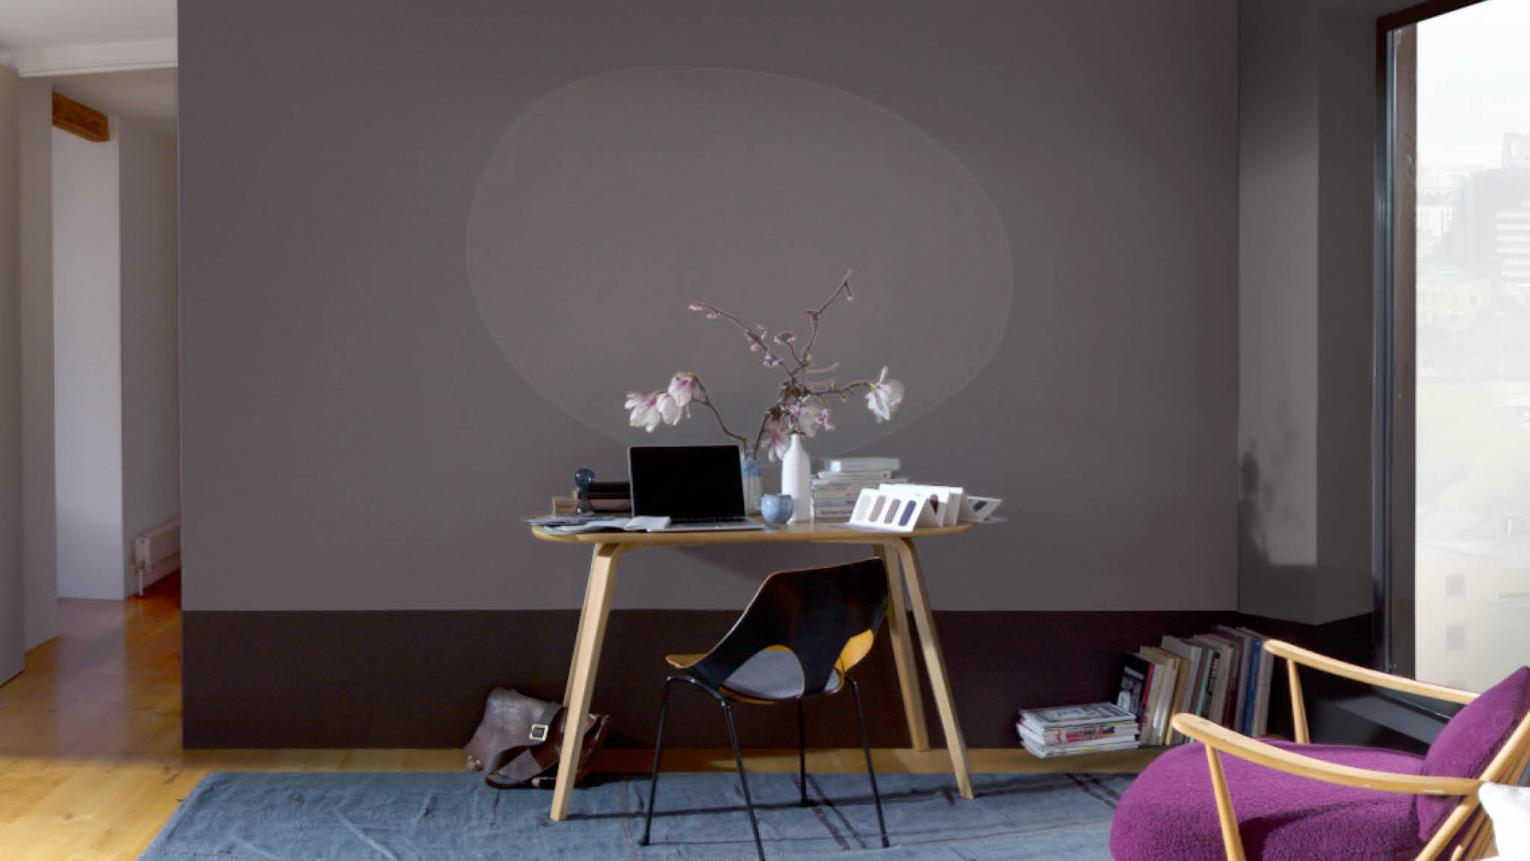 A feature wall in an instant with an eye-catching oval design